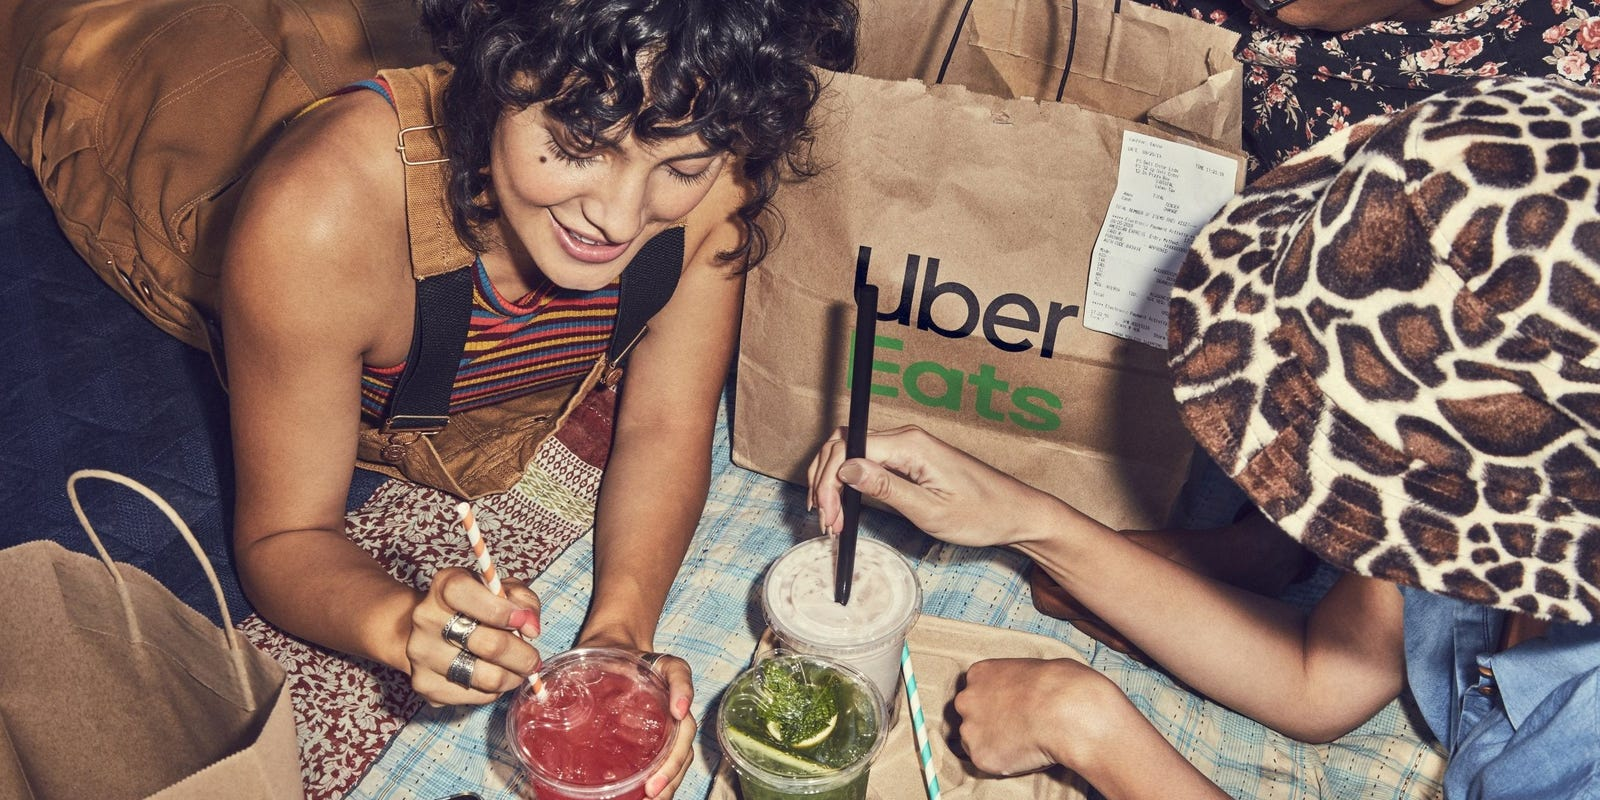 Uber Eats is launching contactless payment tool for dine-in, take out